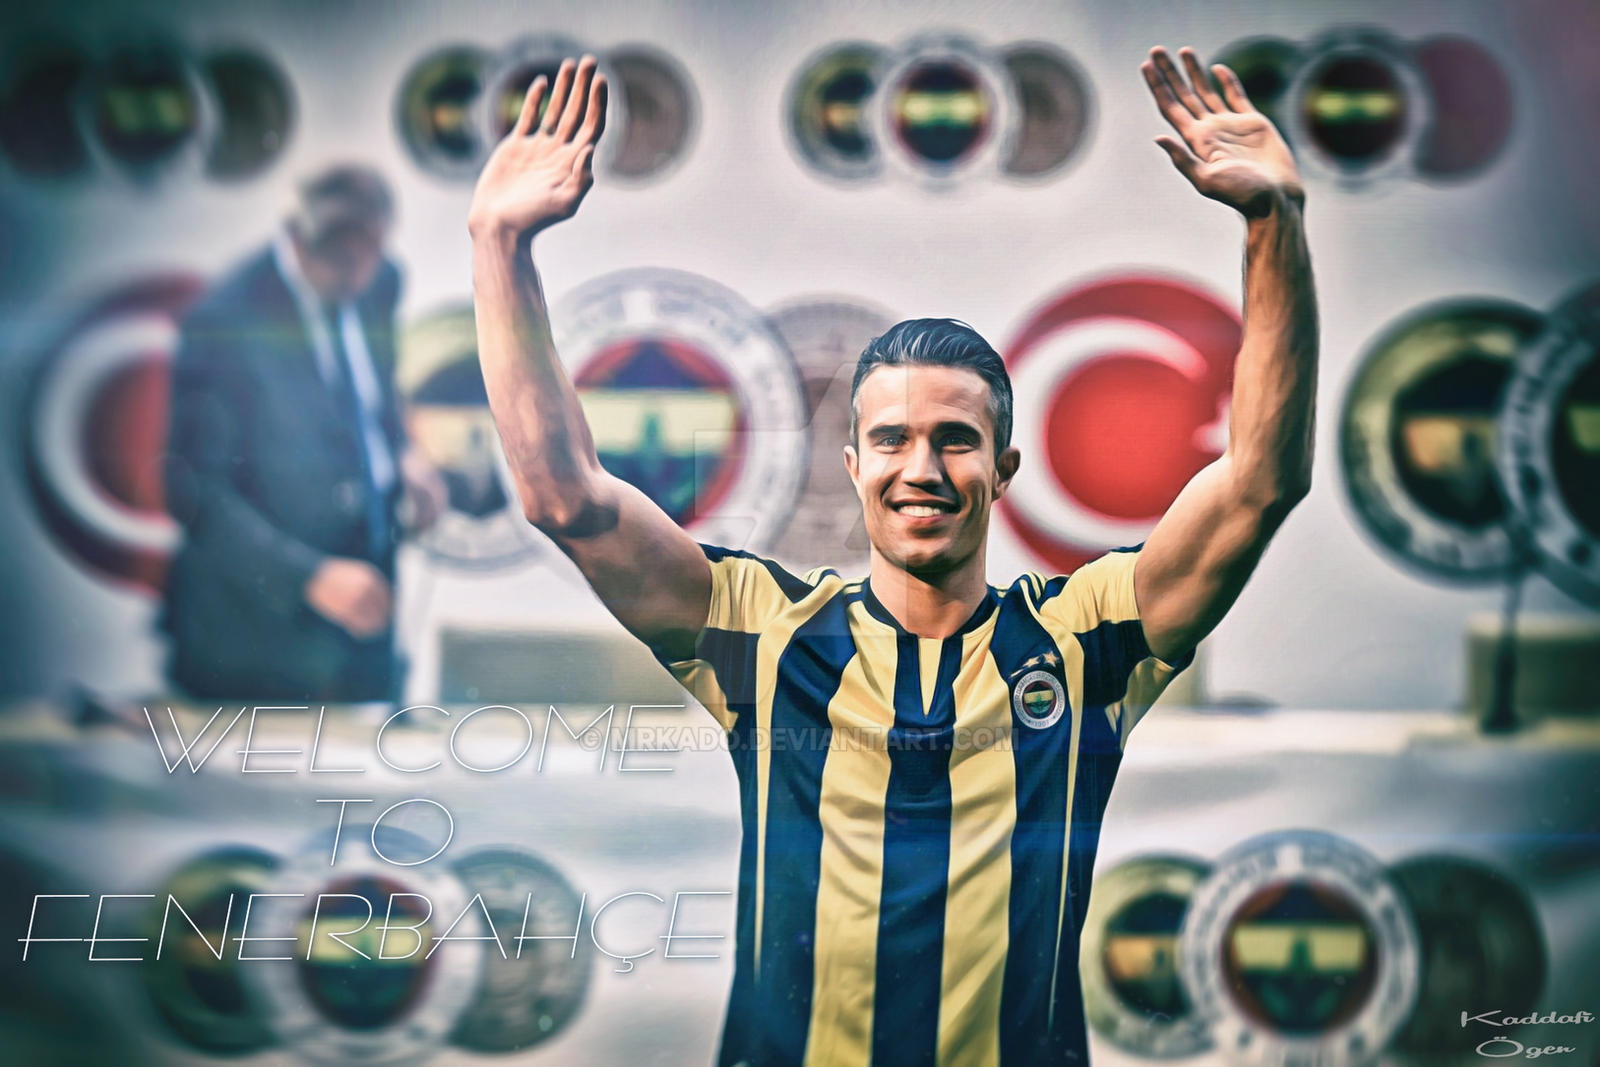 Robin van persie welcome to fenerbahce wallpaper by mrkado on deviantart robin van persie welcome to fenerbahce wallpaper by mrkado voltagebd Image collections